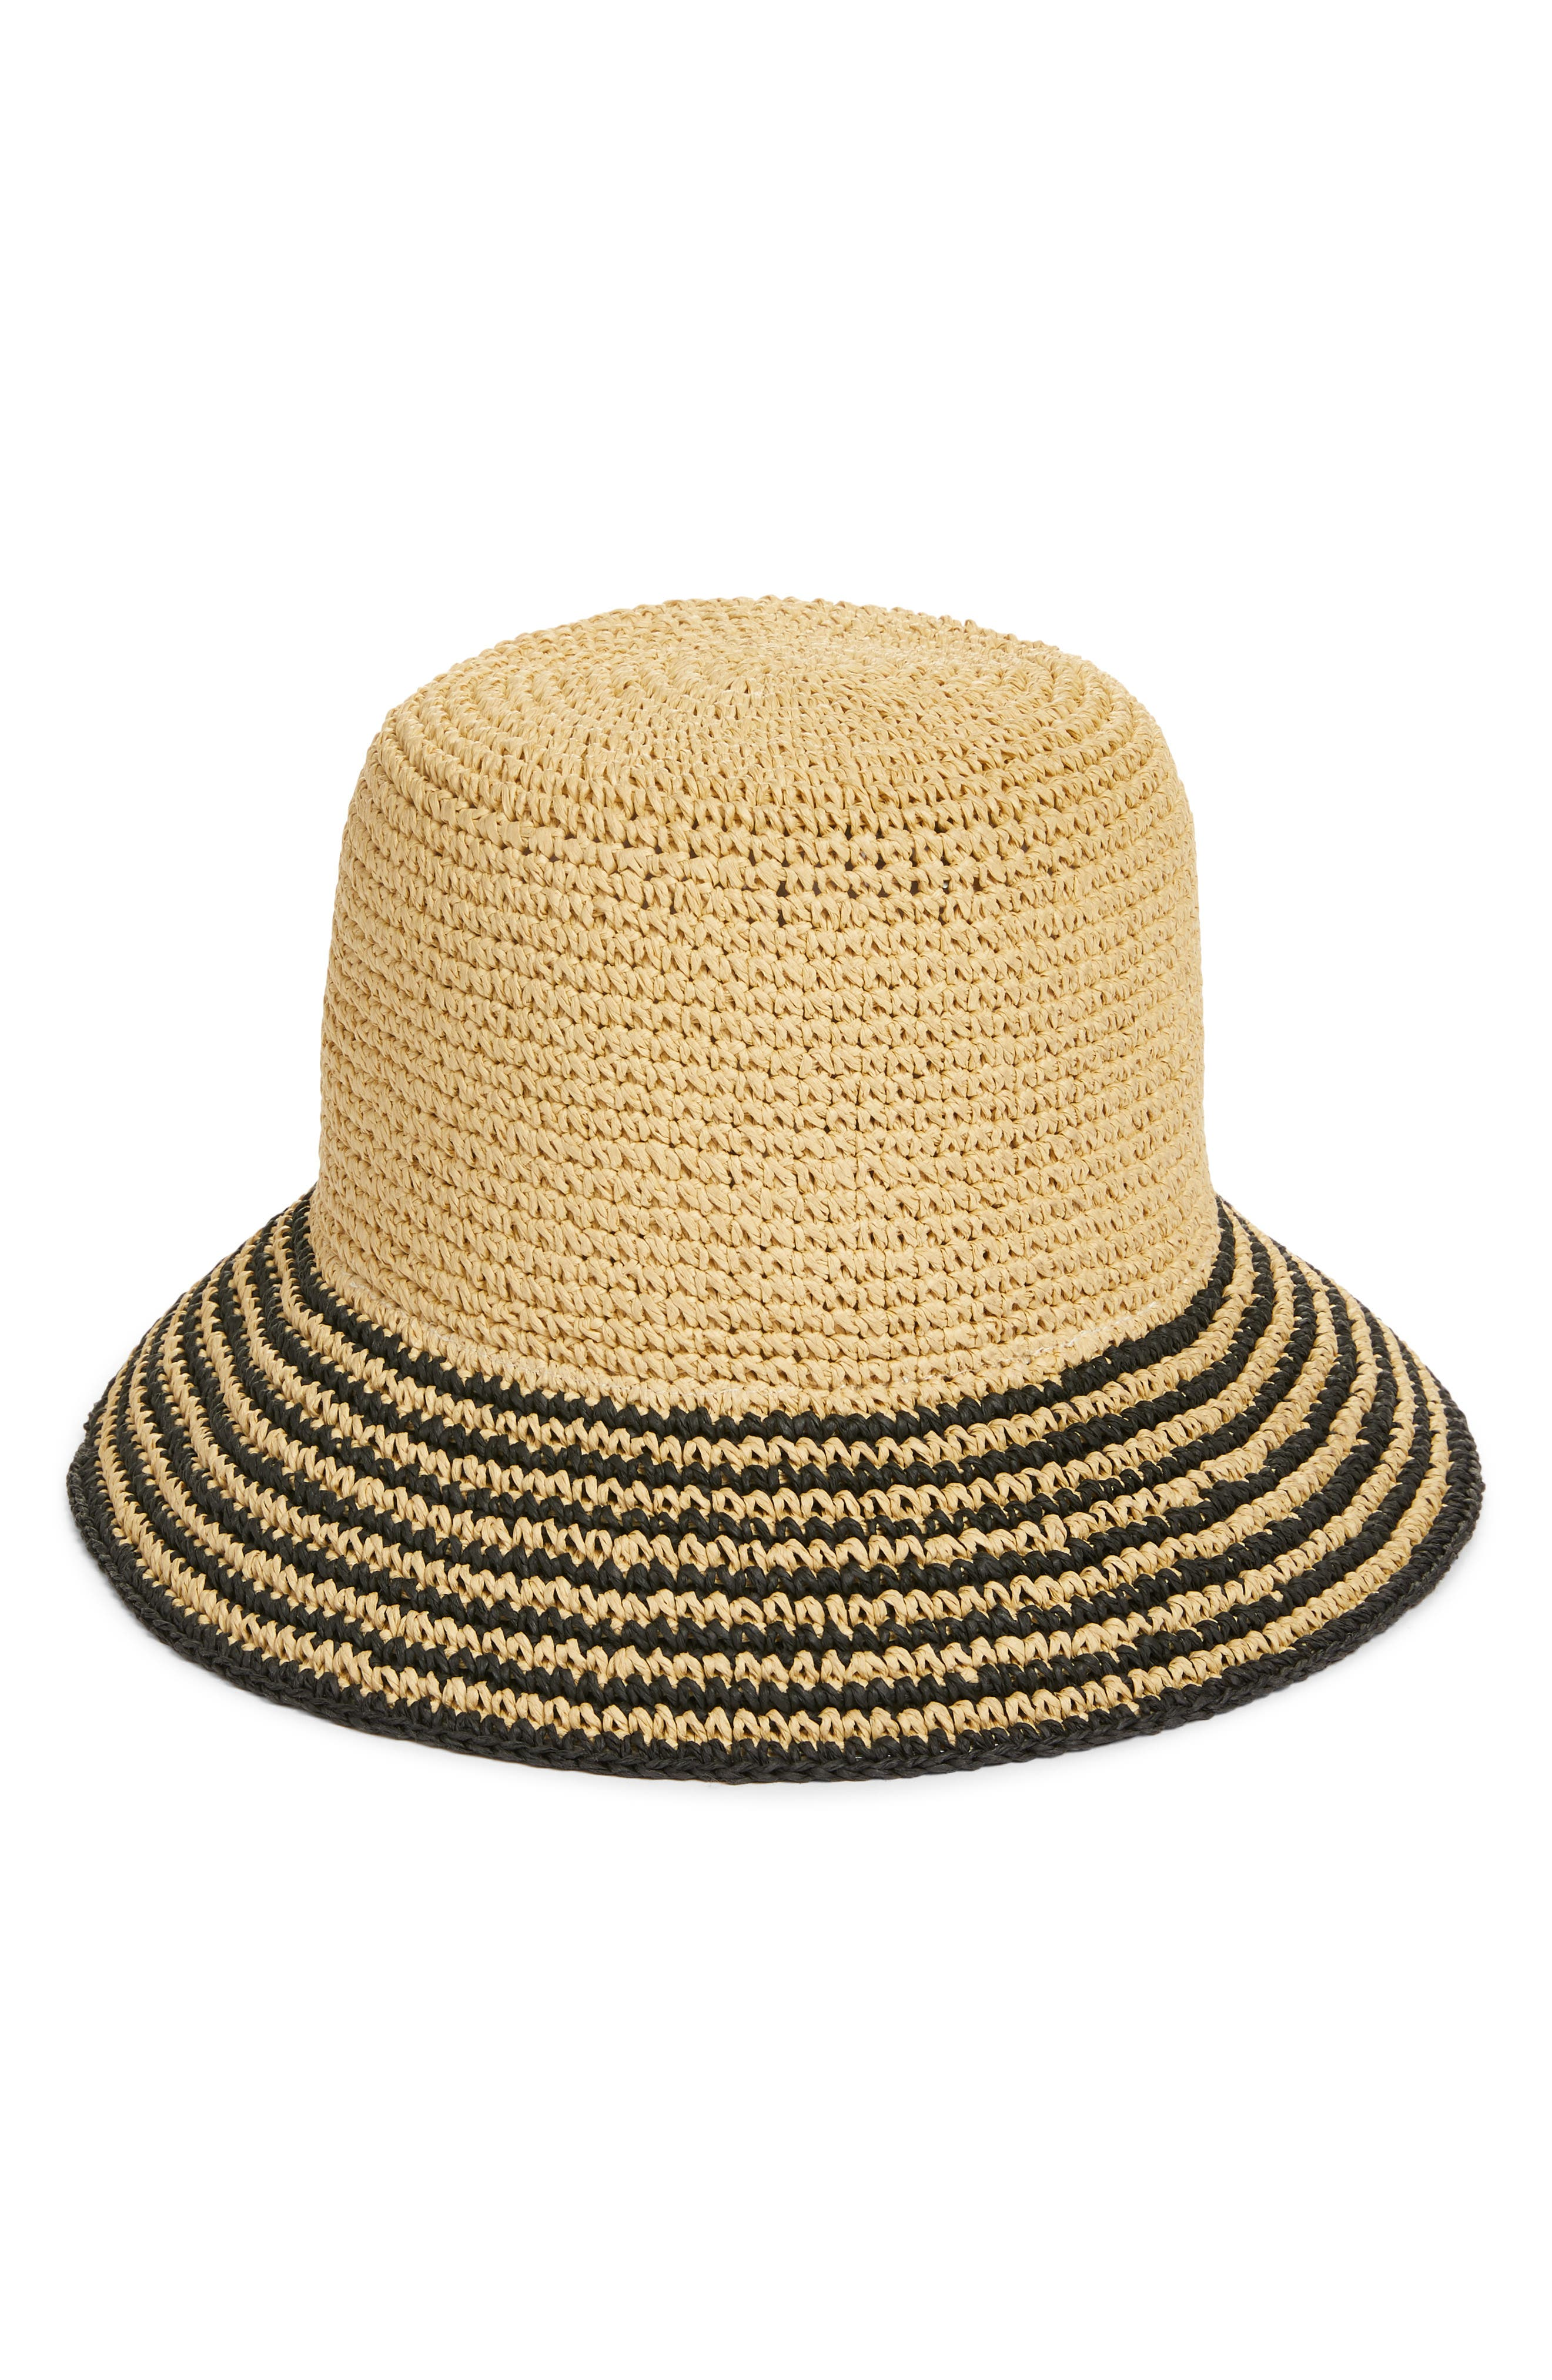 A striped brim brings a statement touch to a paper-straw bucket hat made for the beach and the street. Style Name: Nordstrom Stripe Brim Straw Bucket Hat. Style Number: 5970142. Available in stores.